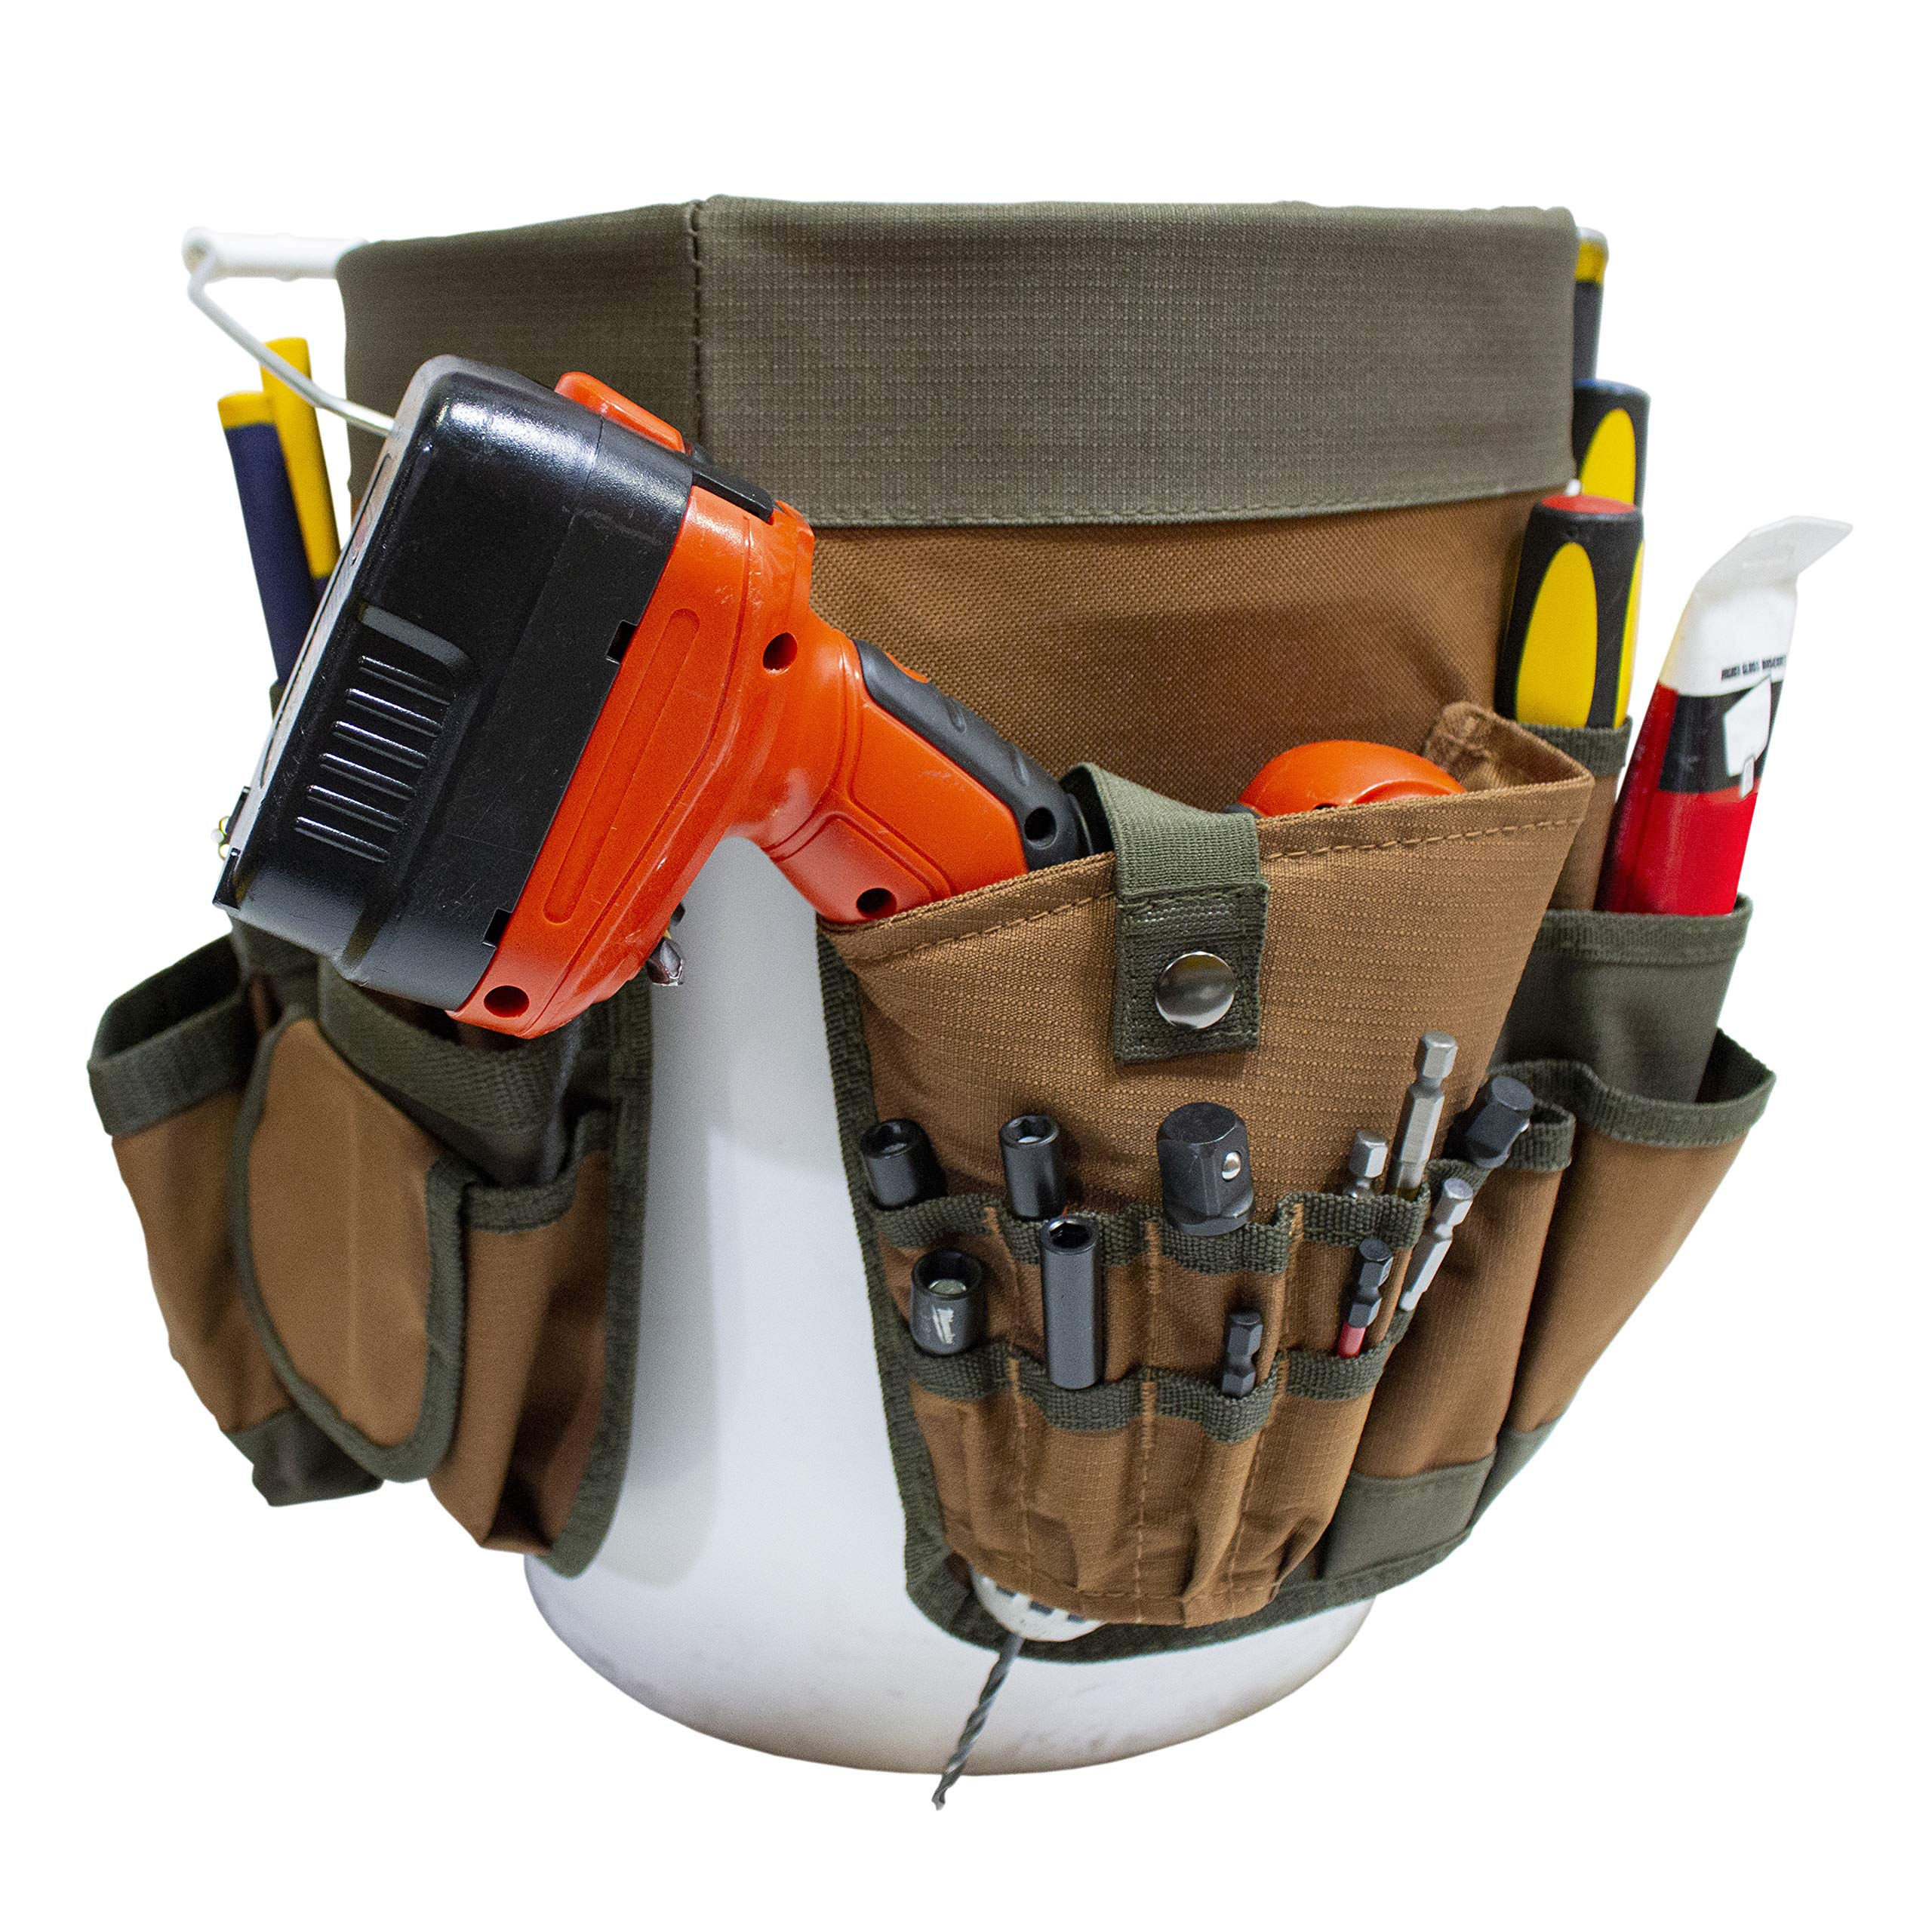 Bucket Boss 56 Bucket Tool Organizer in Brown, 10056 by Bucket Boss (Image #5)